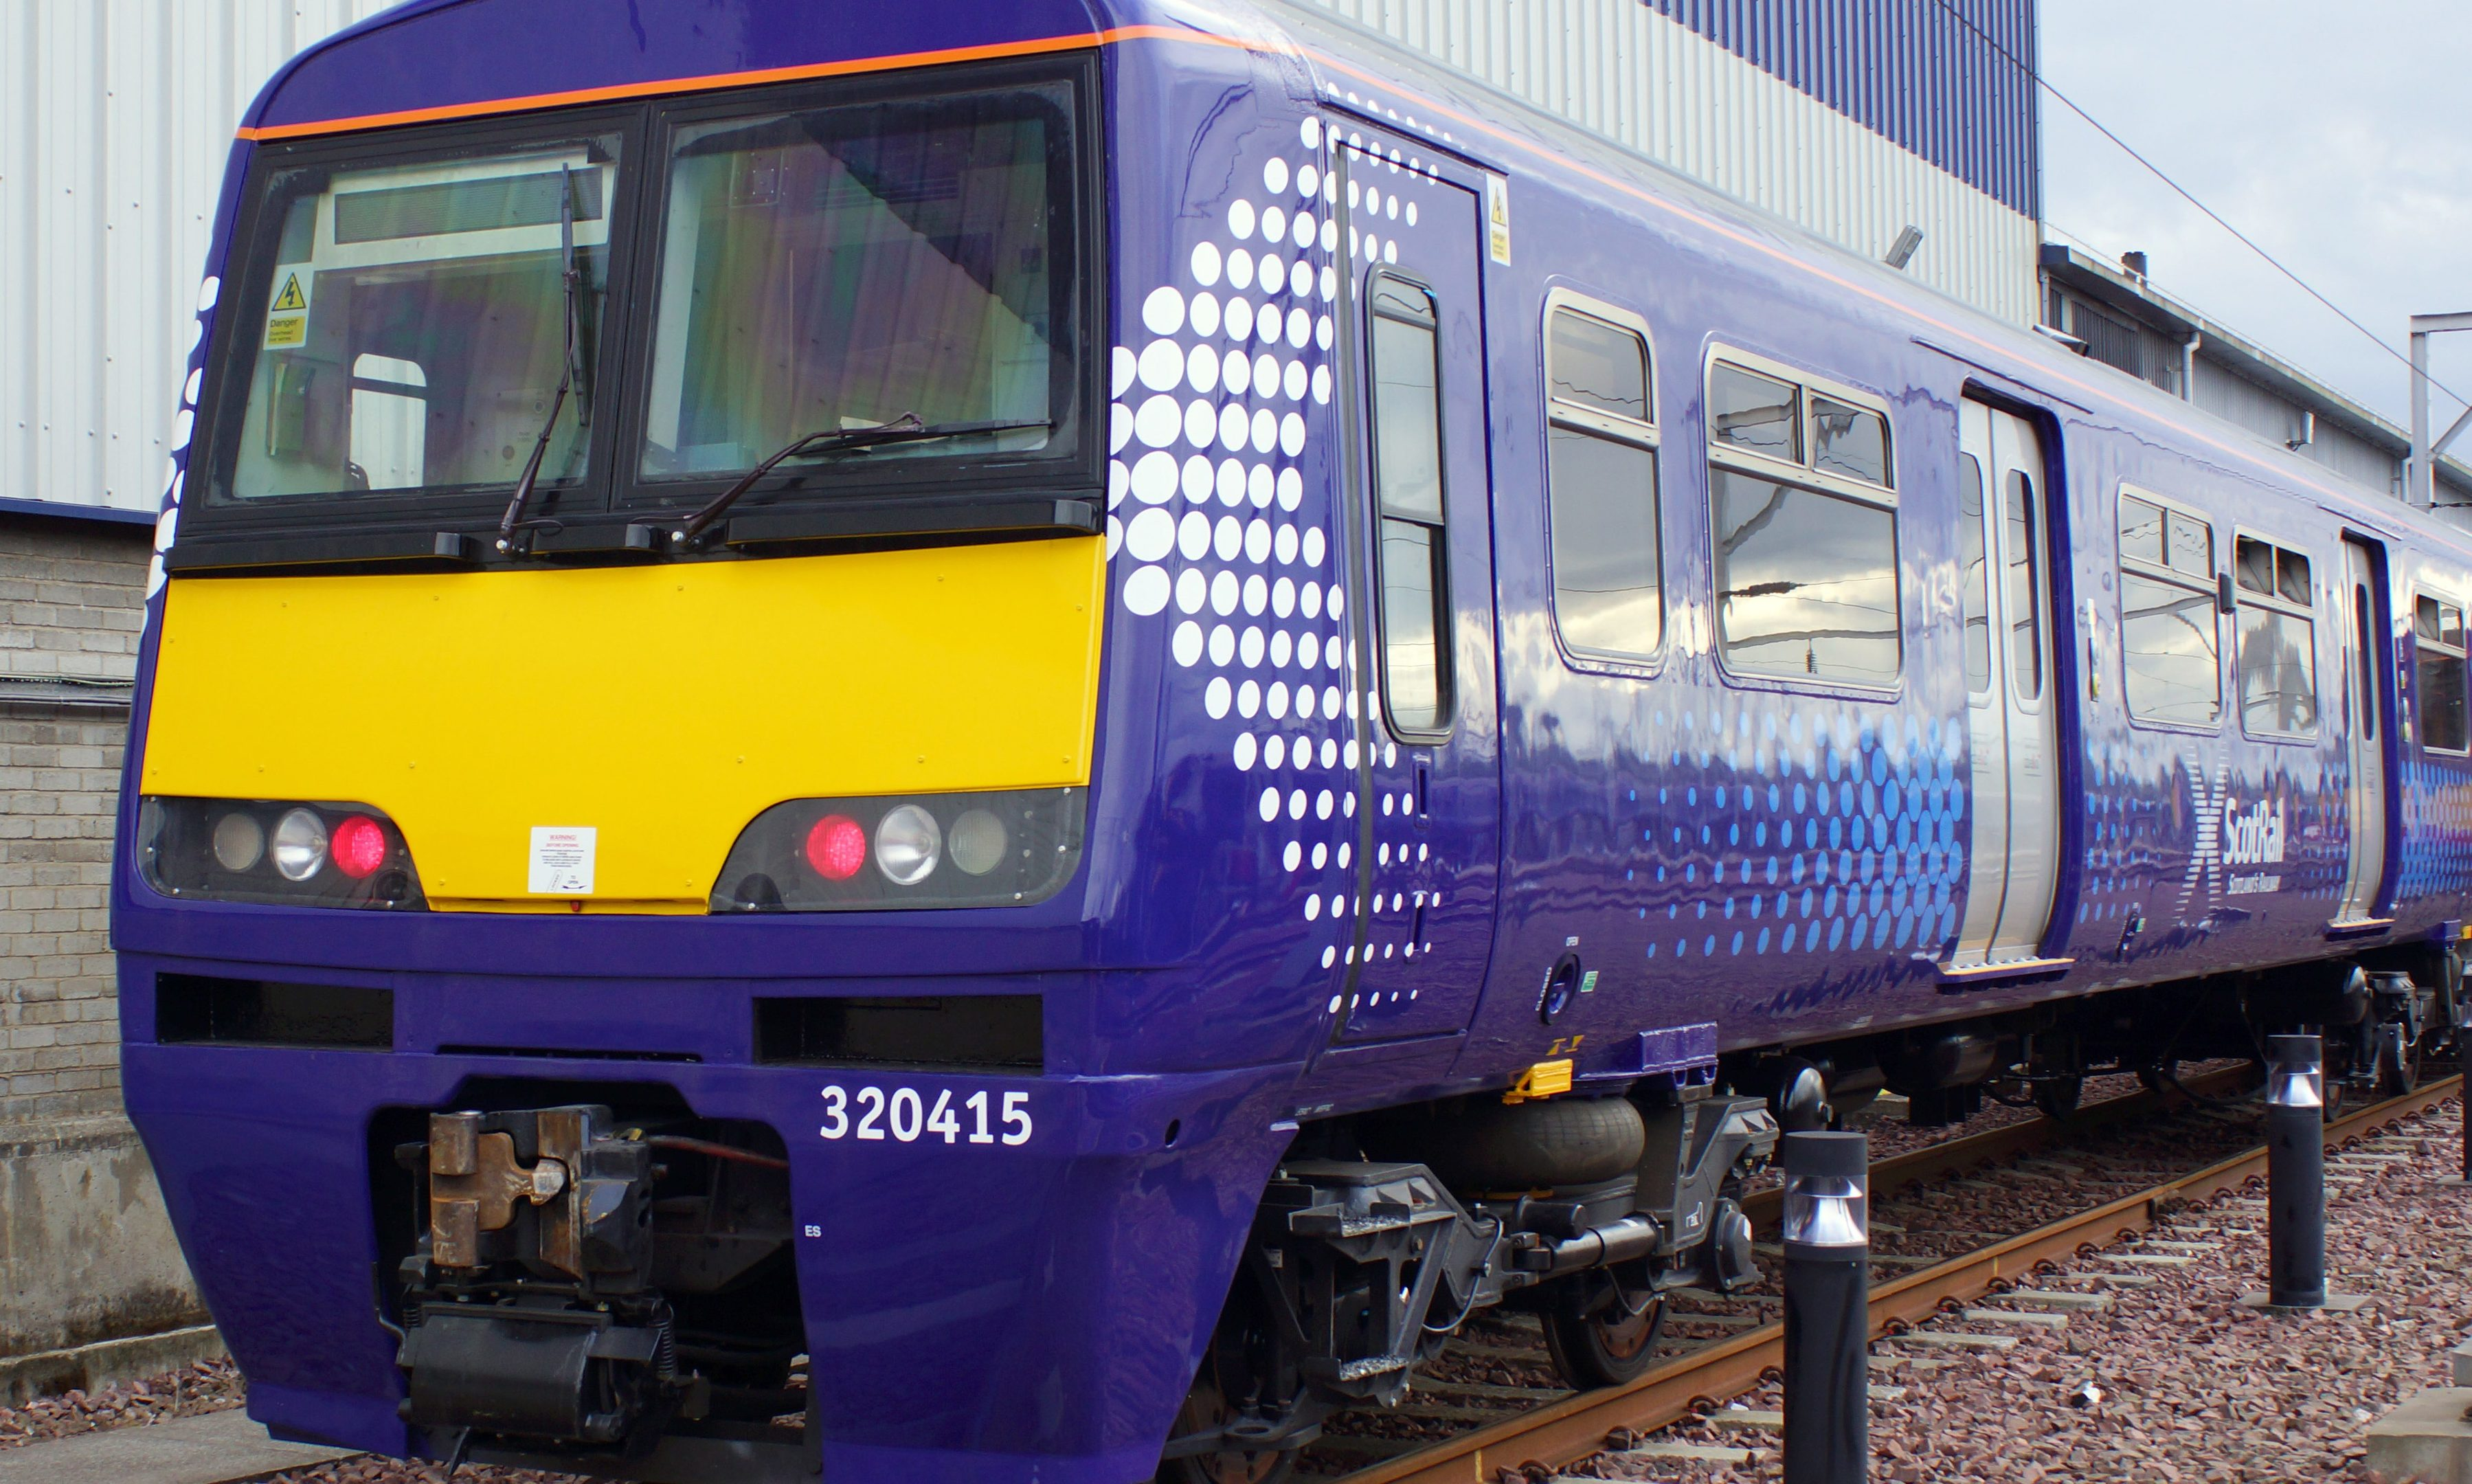 An example of the new trains going into service in Glasgow.